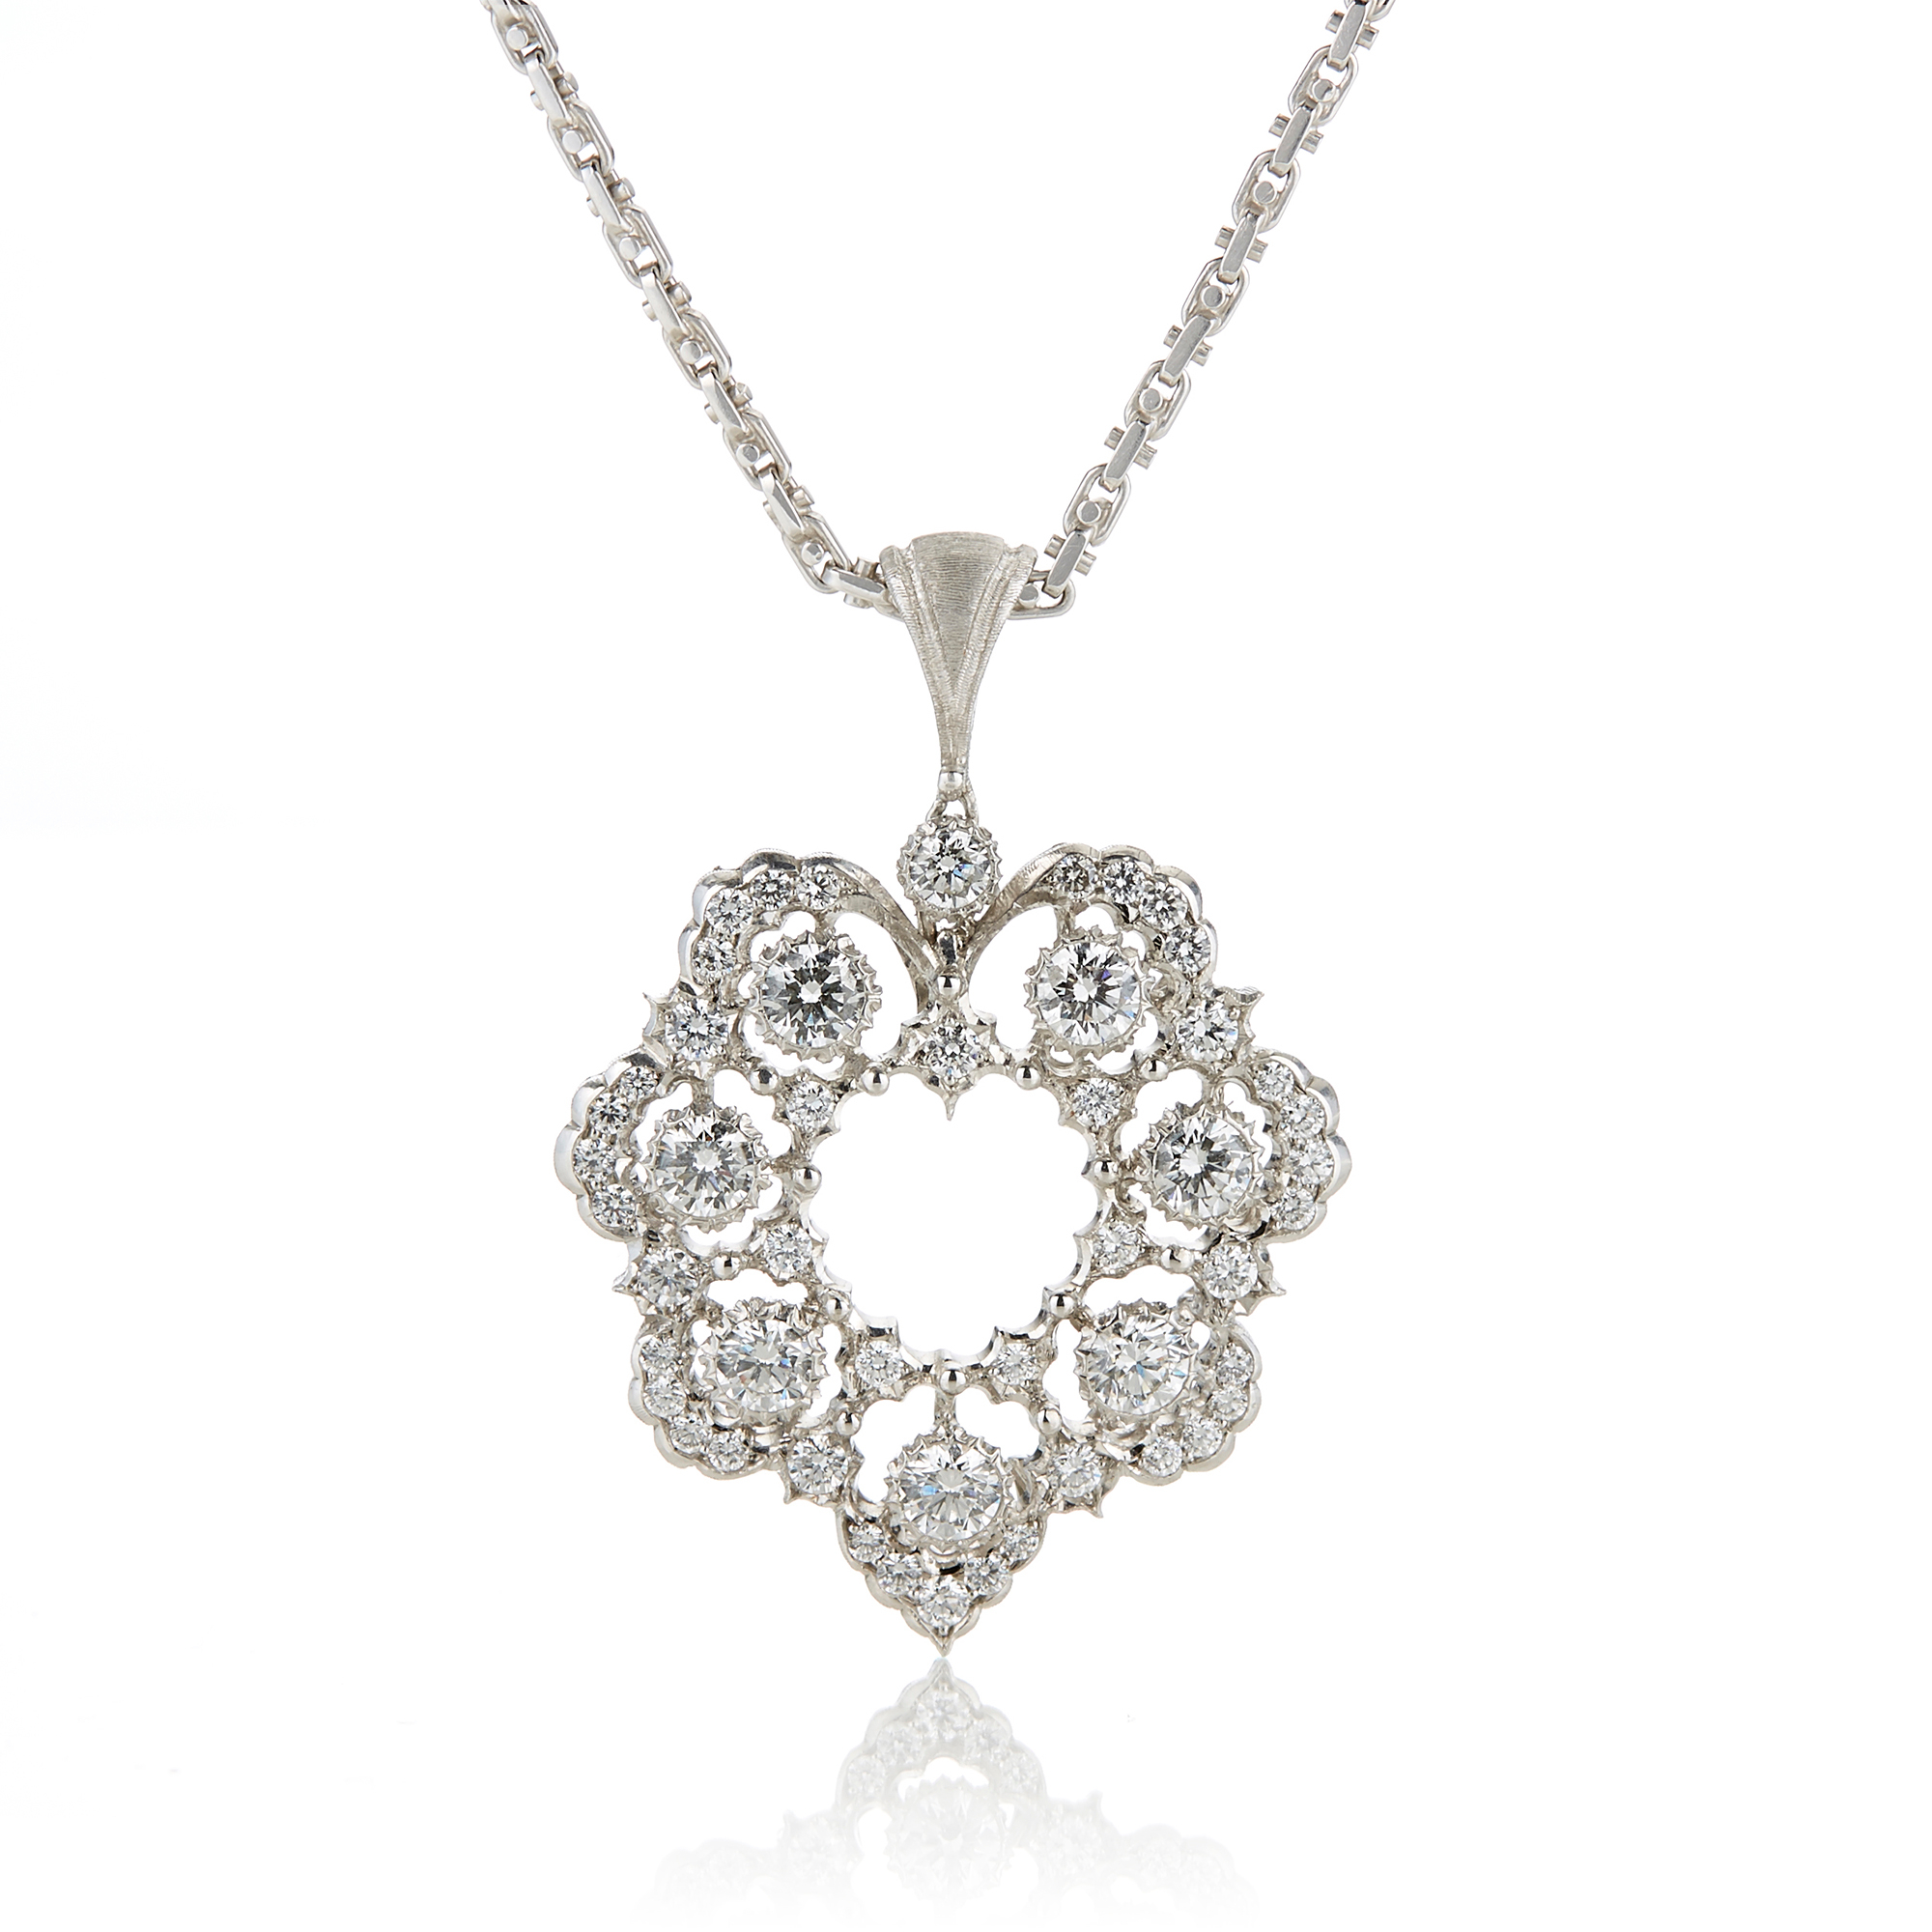 Buccellati Diamond Ghirlanda Pendant Necklace